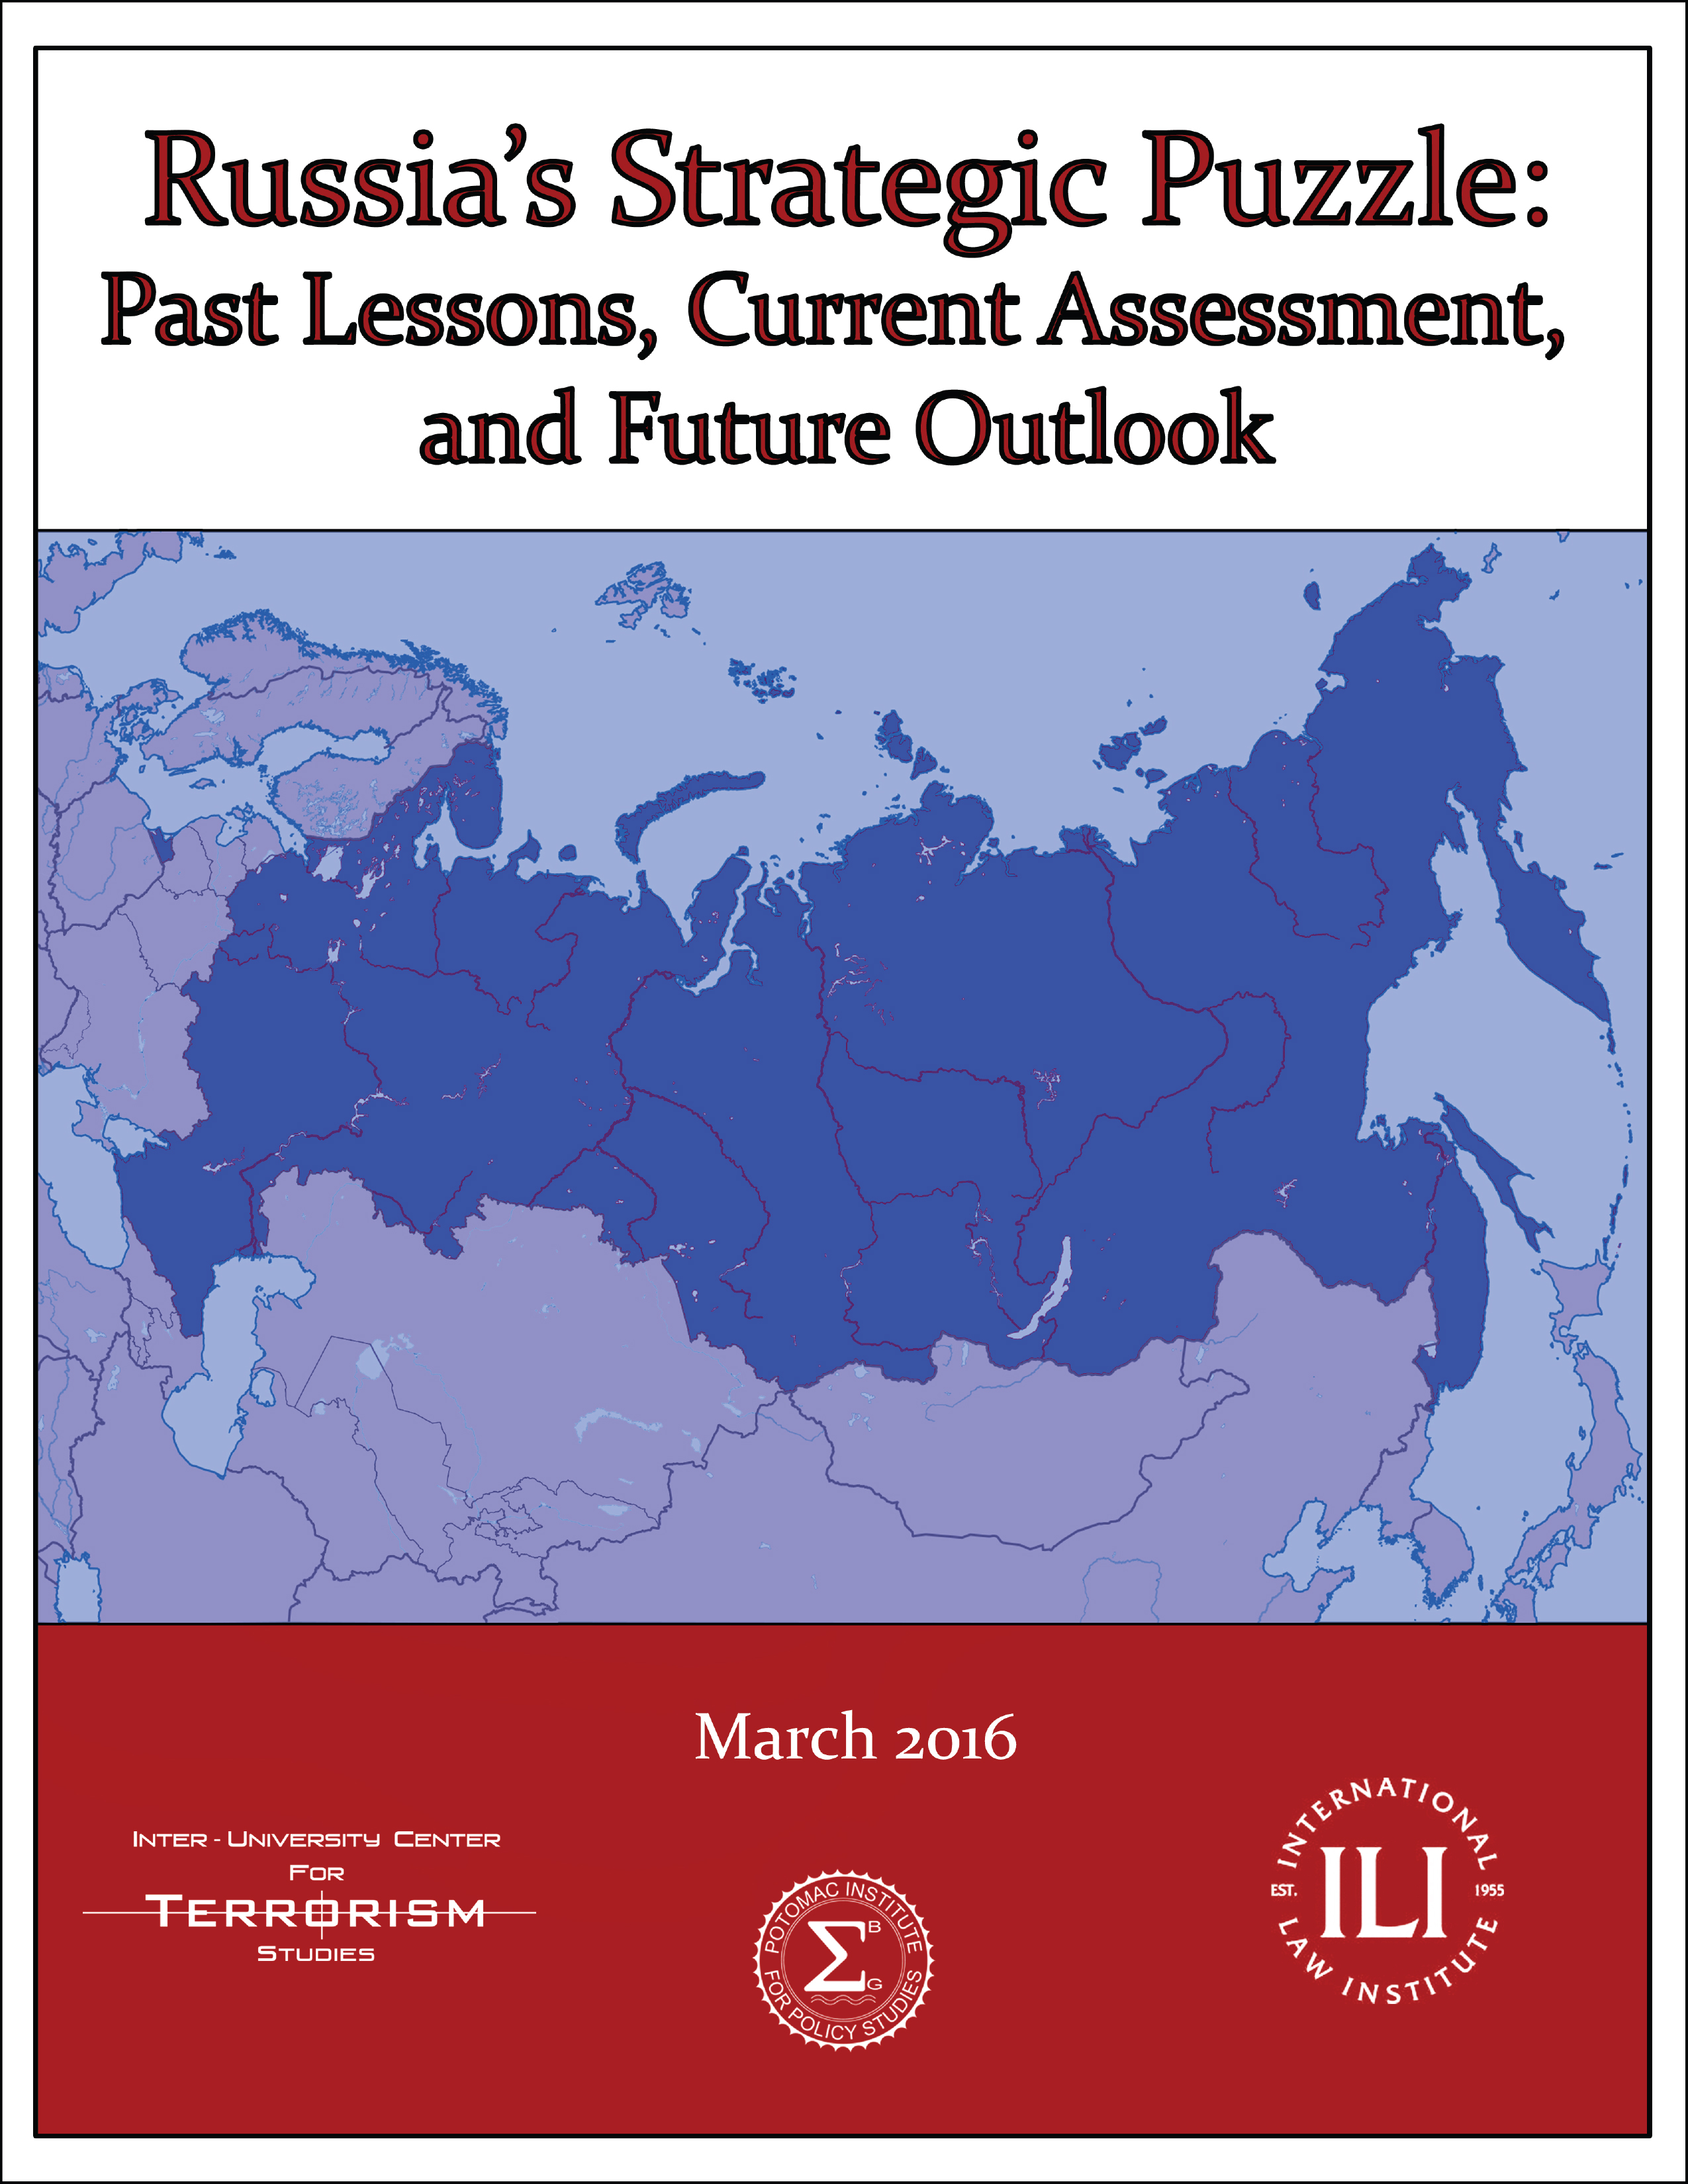 Russia's Strategic Puzzle: Past Lessons, Current Assessment, and Future Outlook